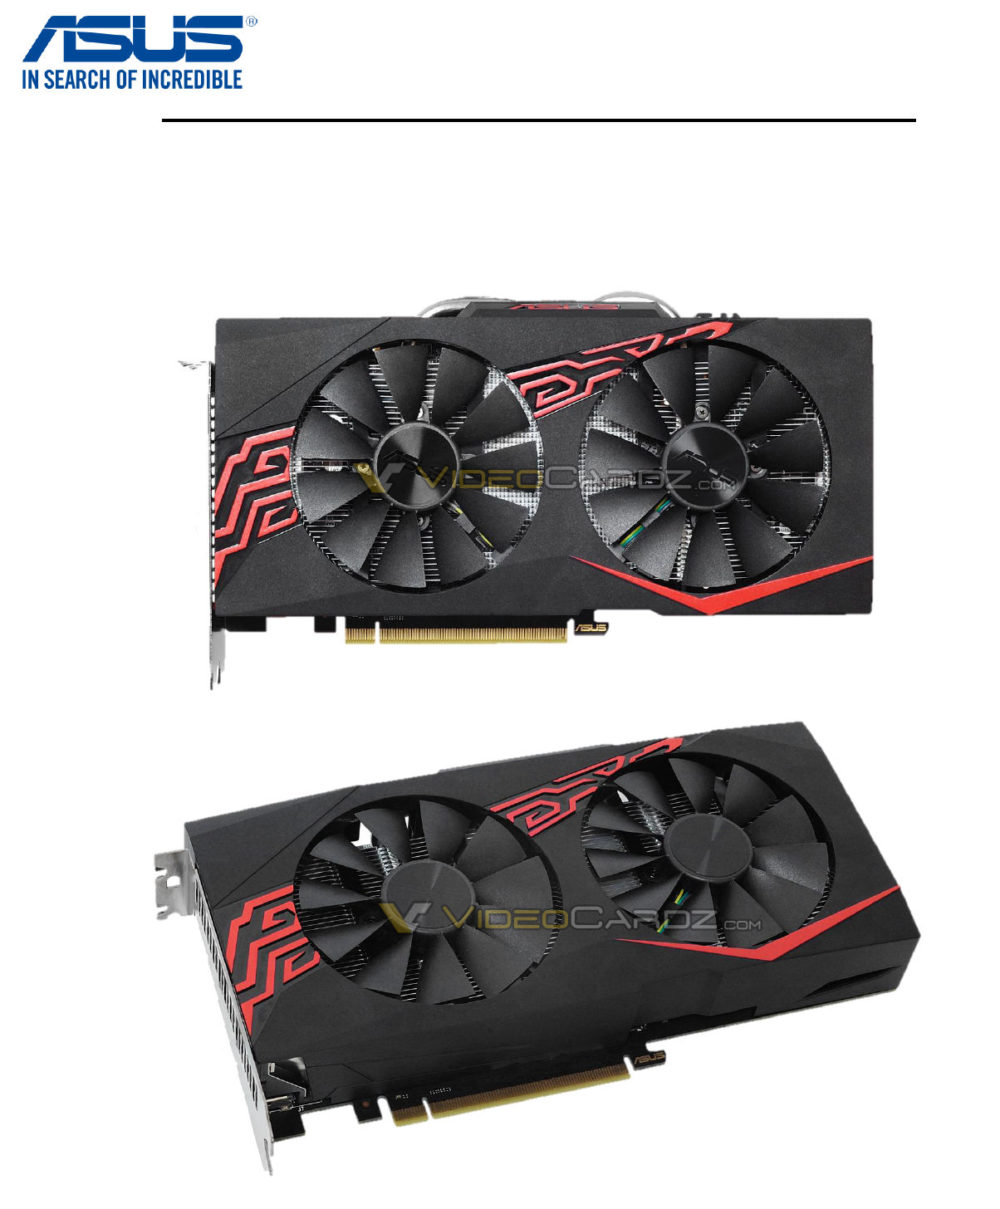 ASUS, COLORFUL and MSI showcase their mining graphics cards